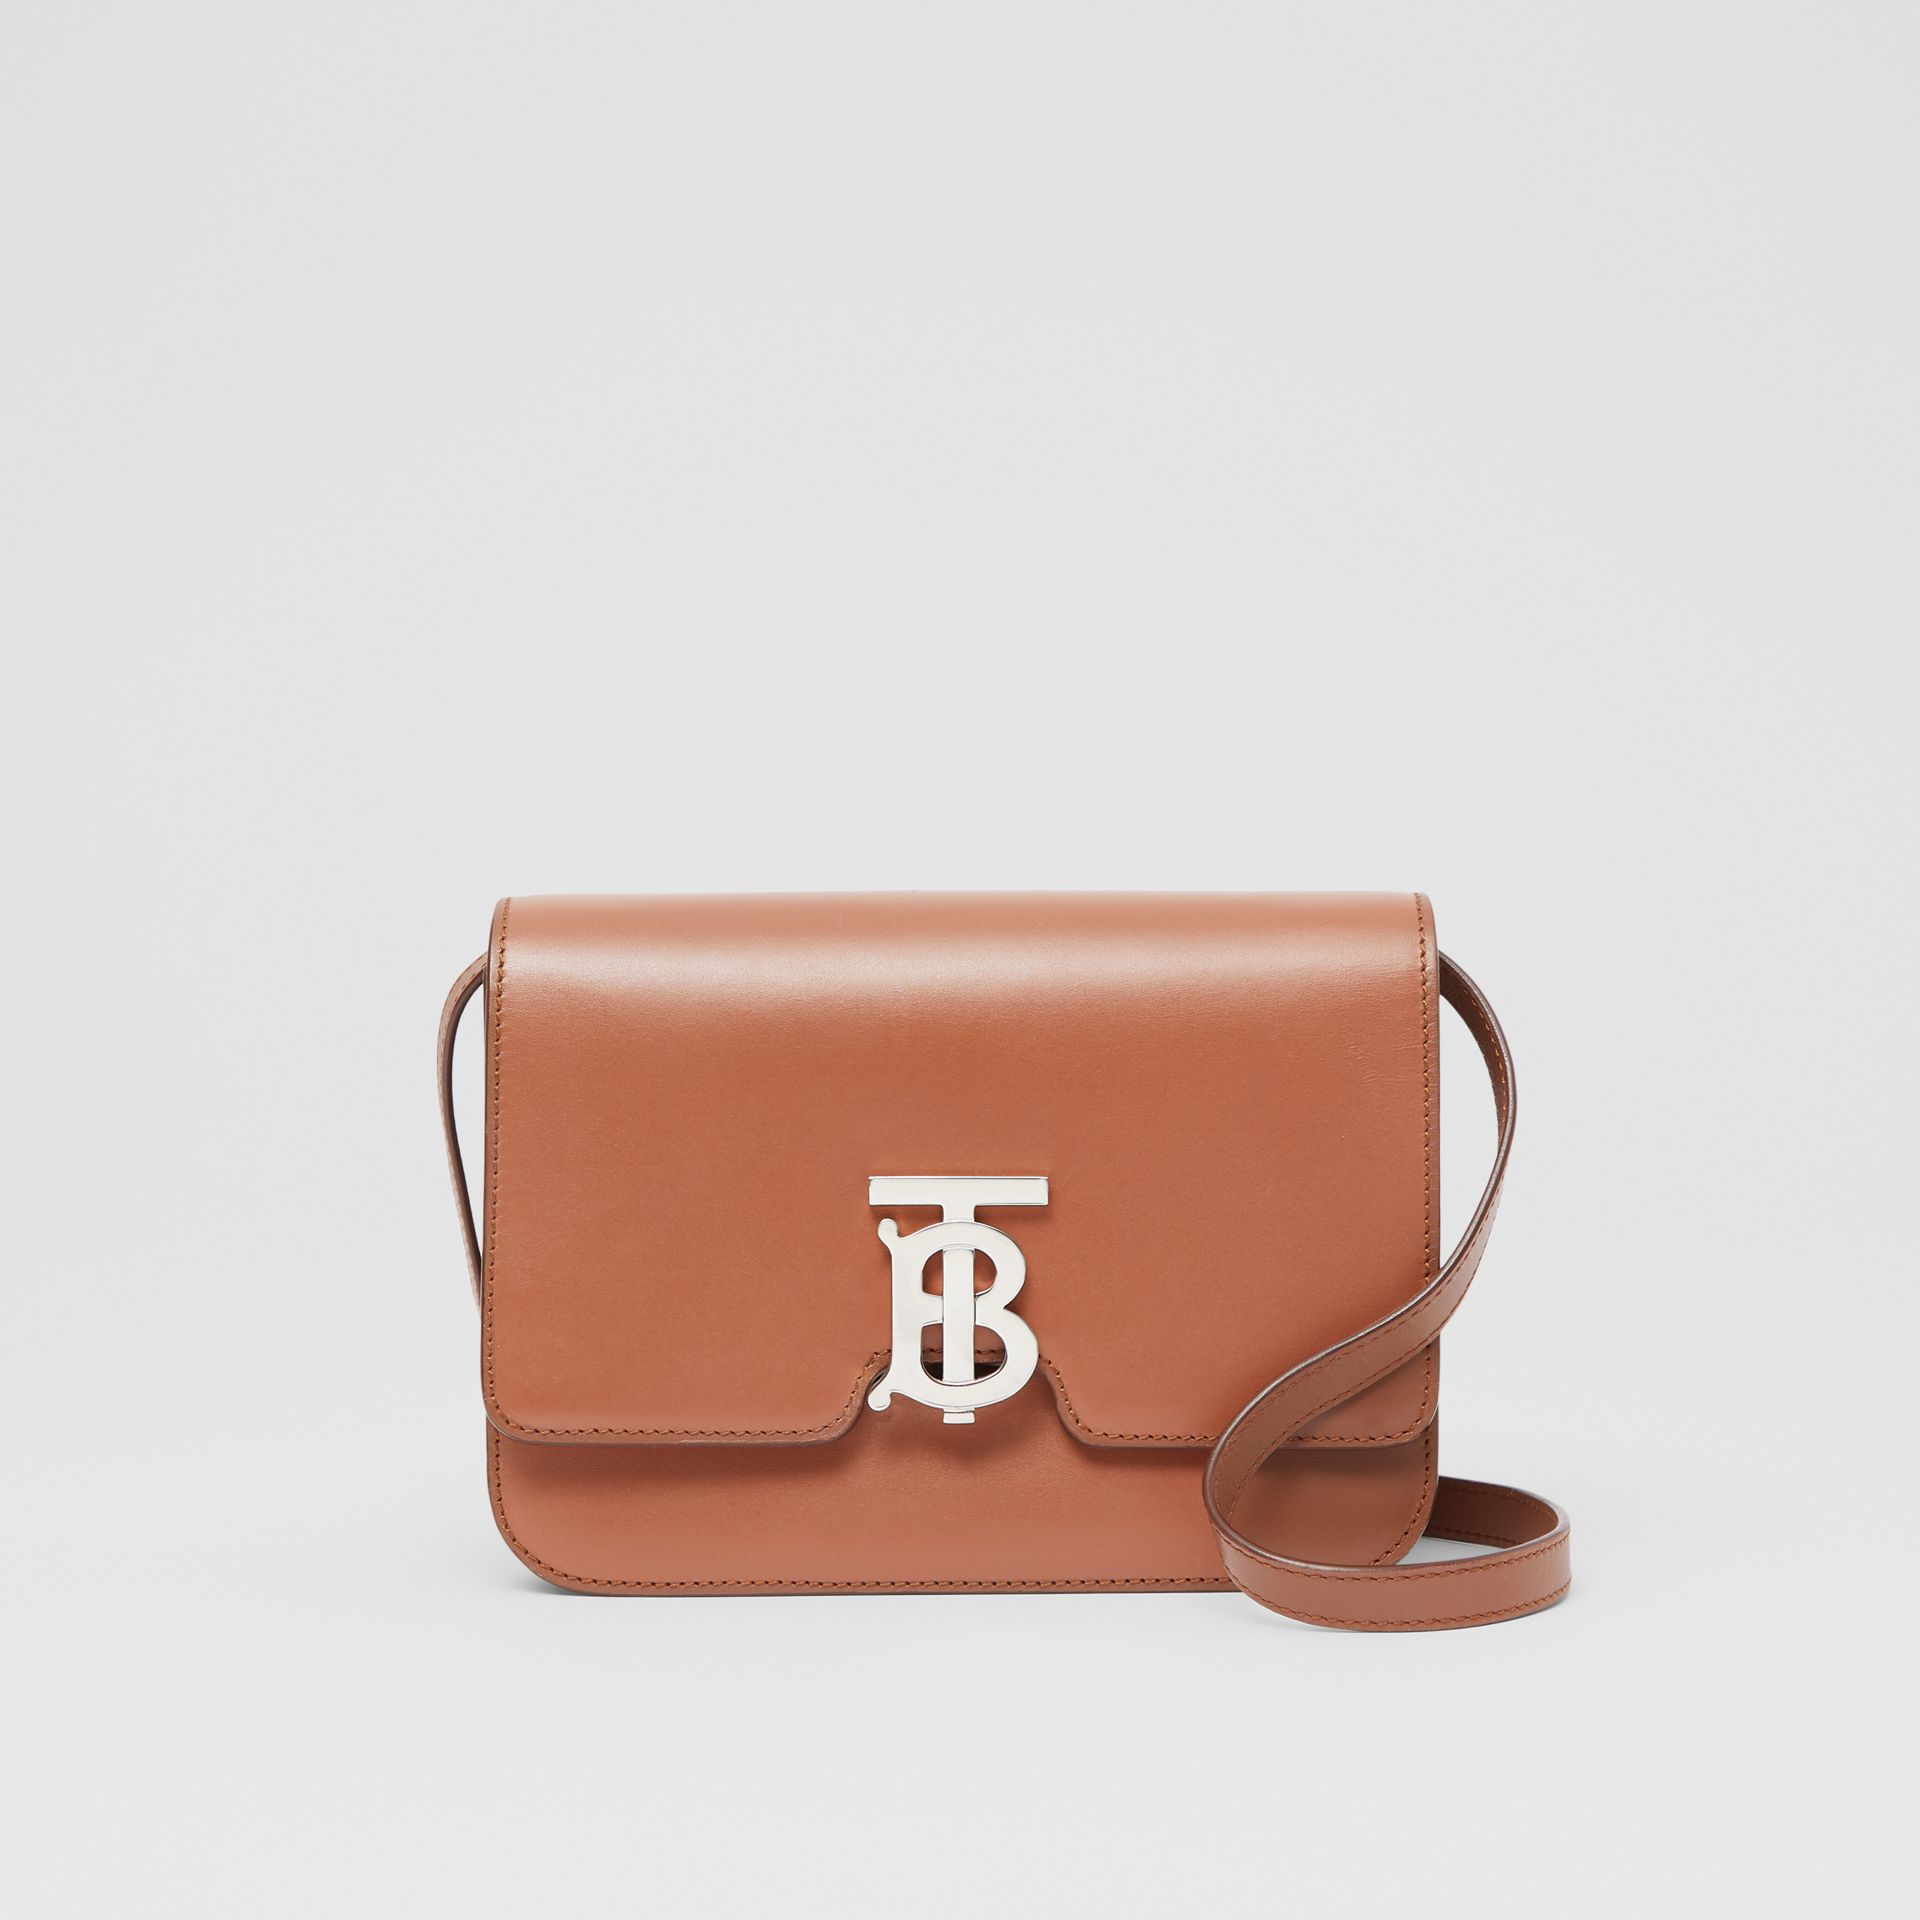 Small Leather TB Bag in Malt Brown - Women | Burberry - gallery image 0